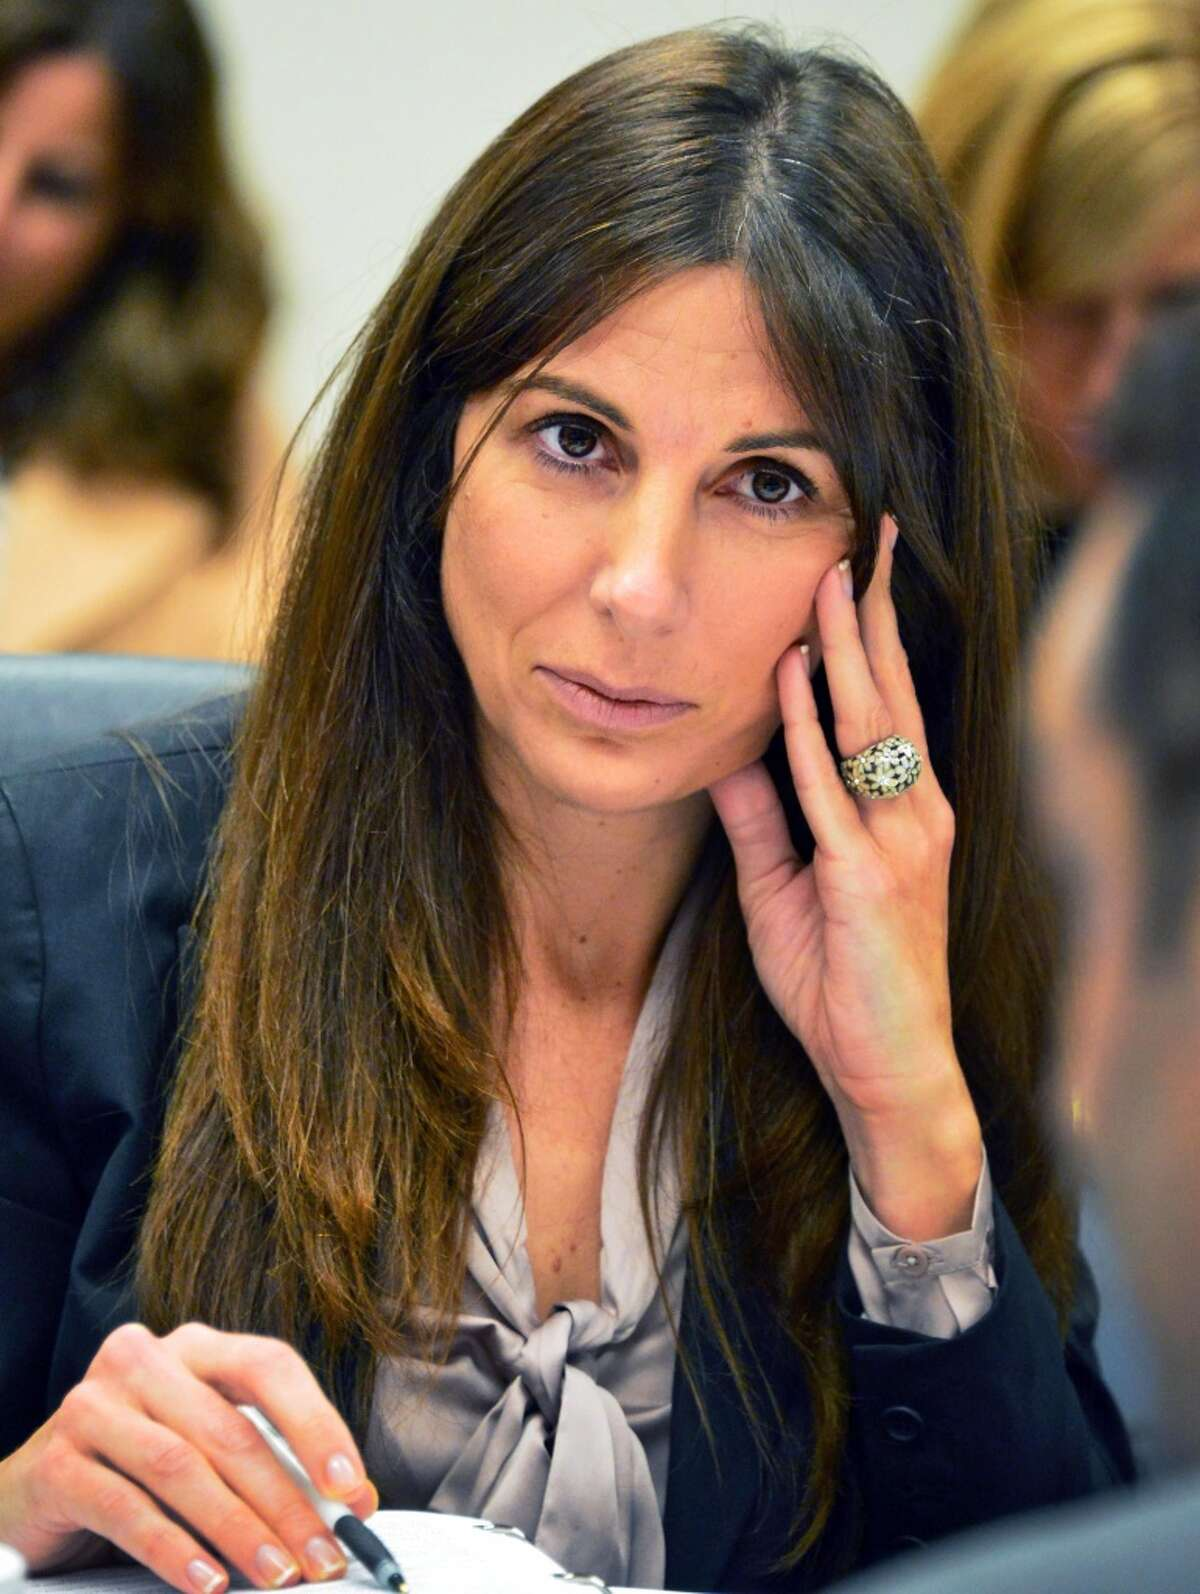 Inspector General Letizia Tagliafierro is a former JCOPE executive director and Cuomo appointee. She is shown here in the New York State Joint Commission on Public Ethics meeting in Albany Tuesday Oct. 29, 2013, in Albany. (Times Union archive)